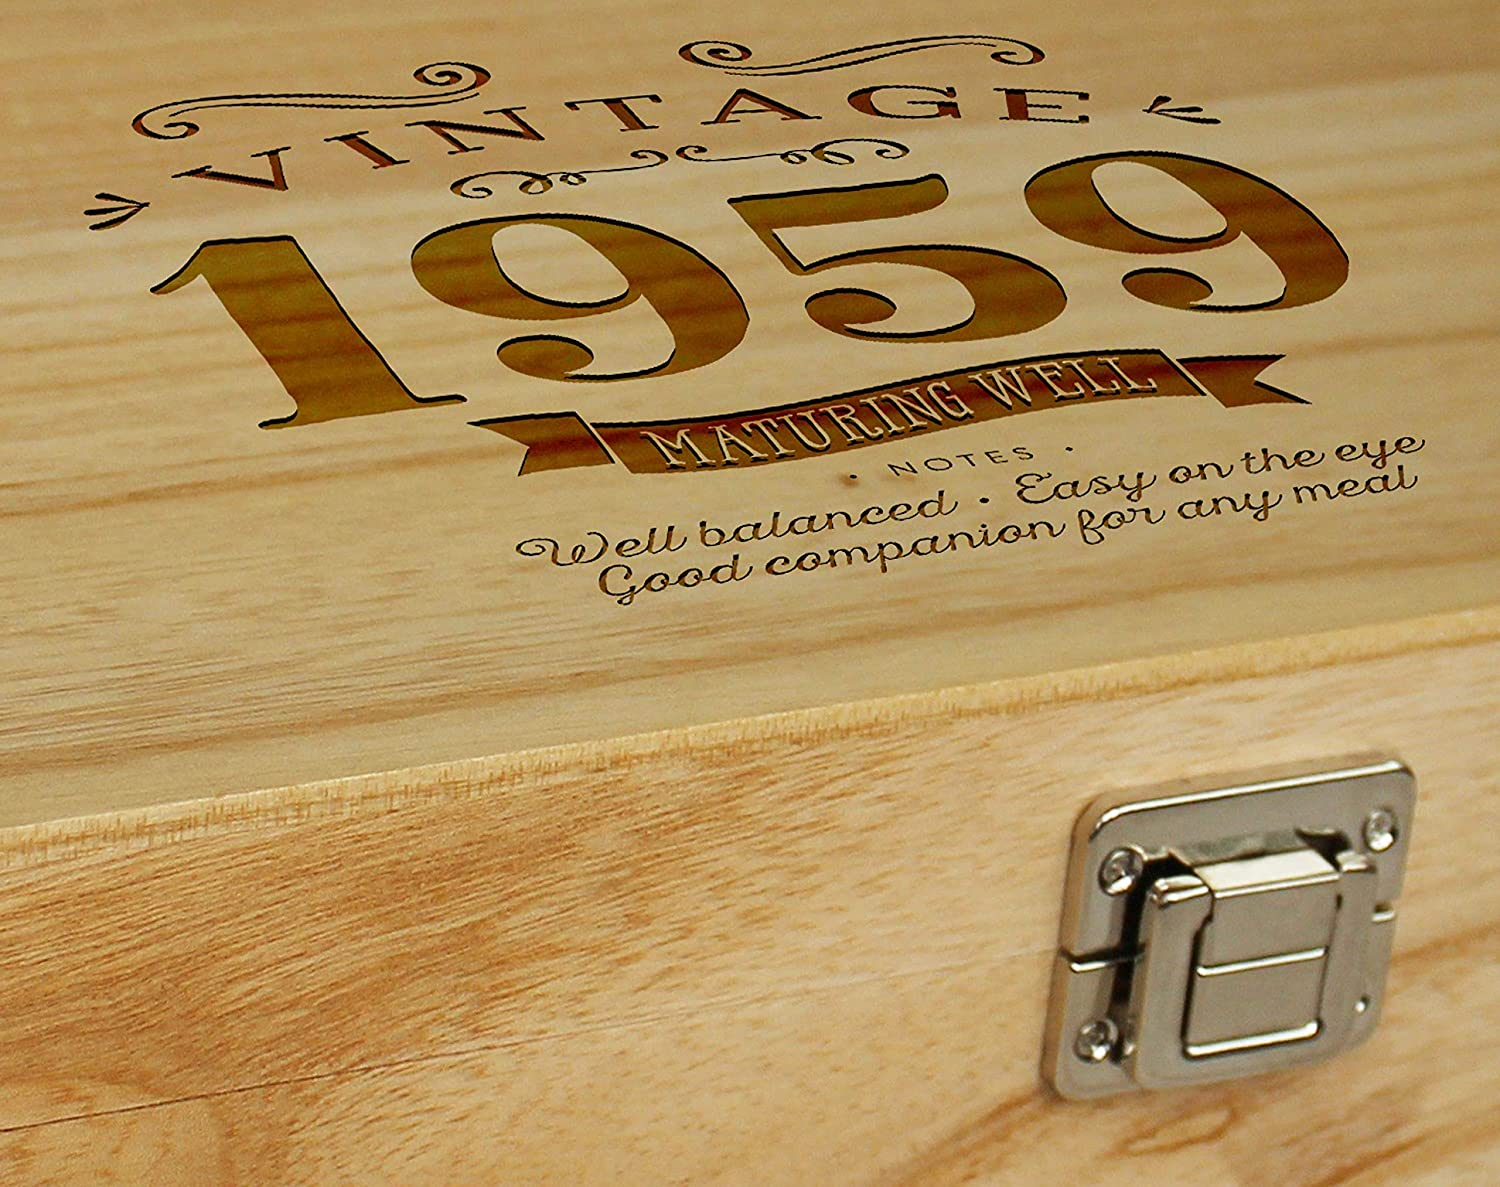 60th Birthday 1959 Vintage Wine Box Gift Idea for 60 Year Old Holds 2 Standard Wine Bottles